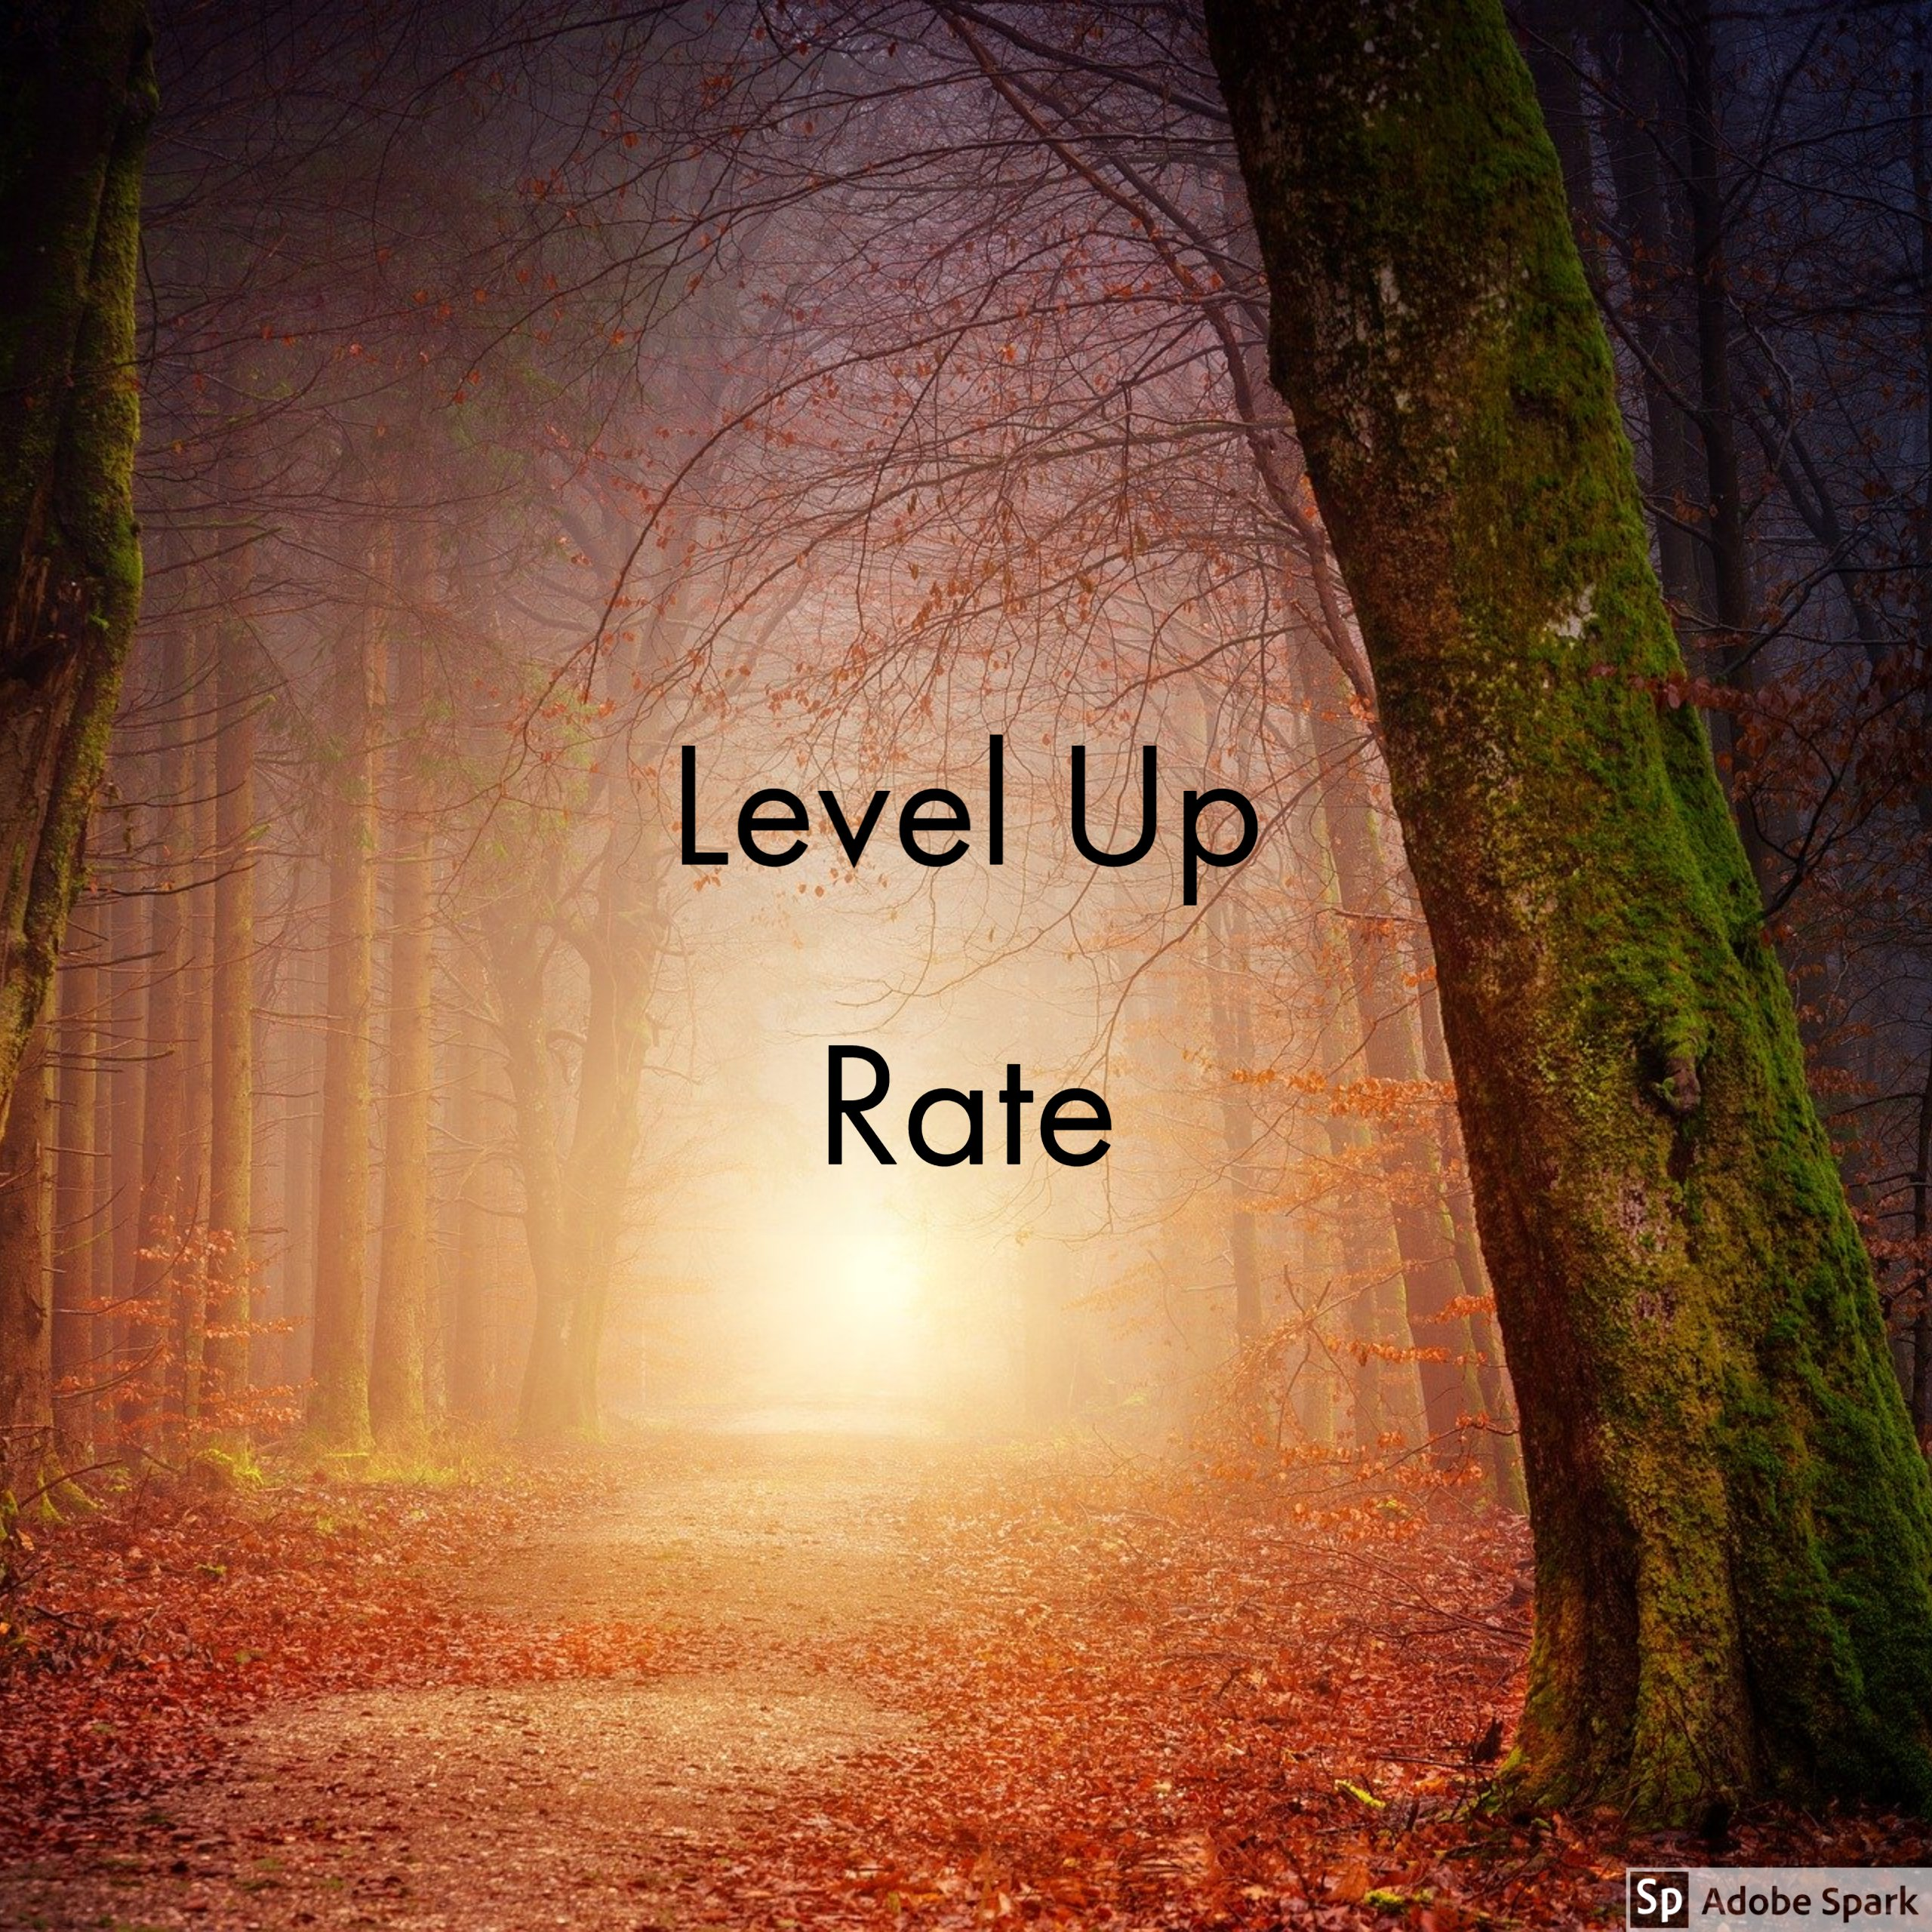 Level Up Rate